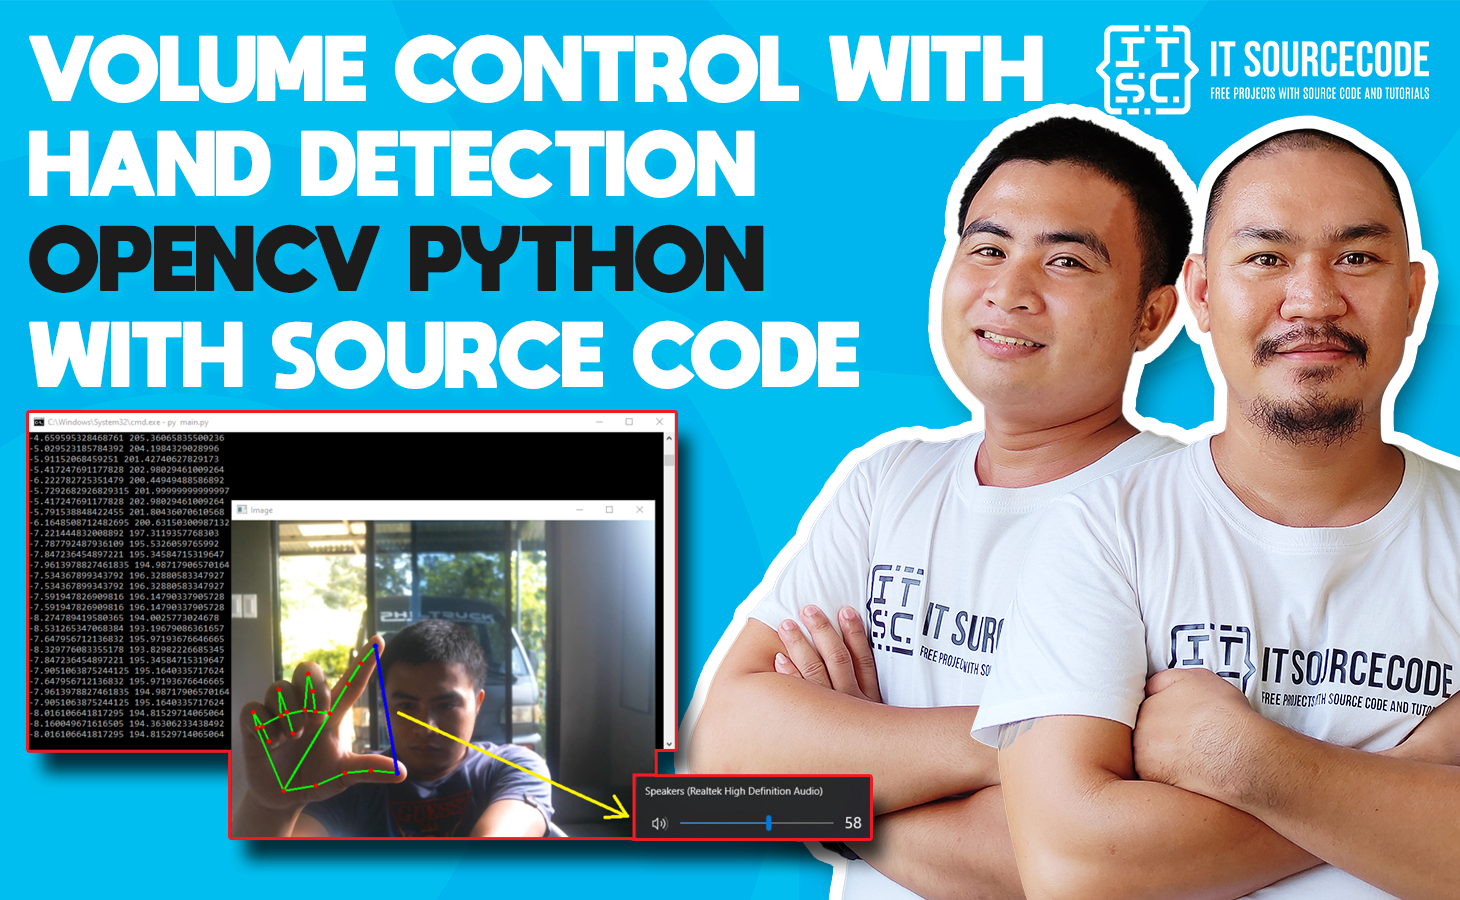 Volume Control With Hand Detection OpenCV Python With Source Code